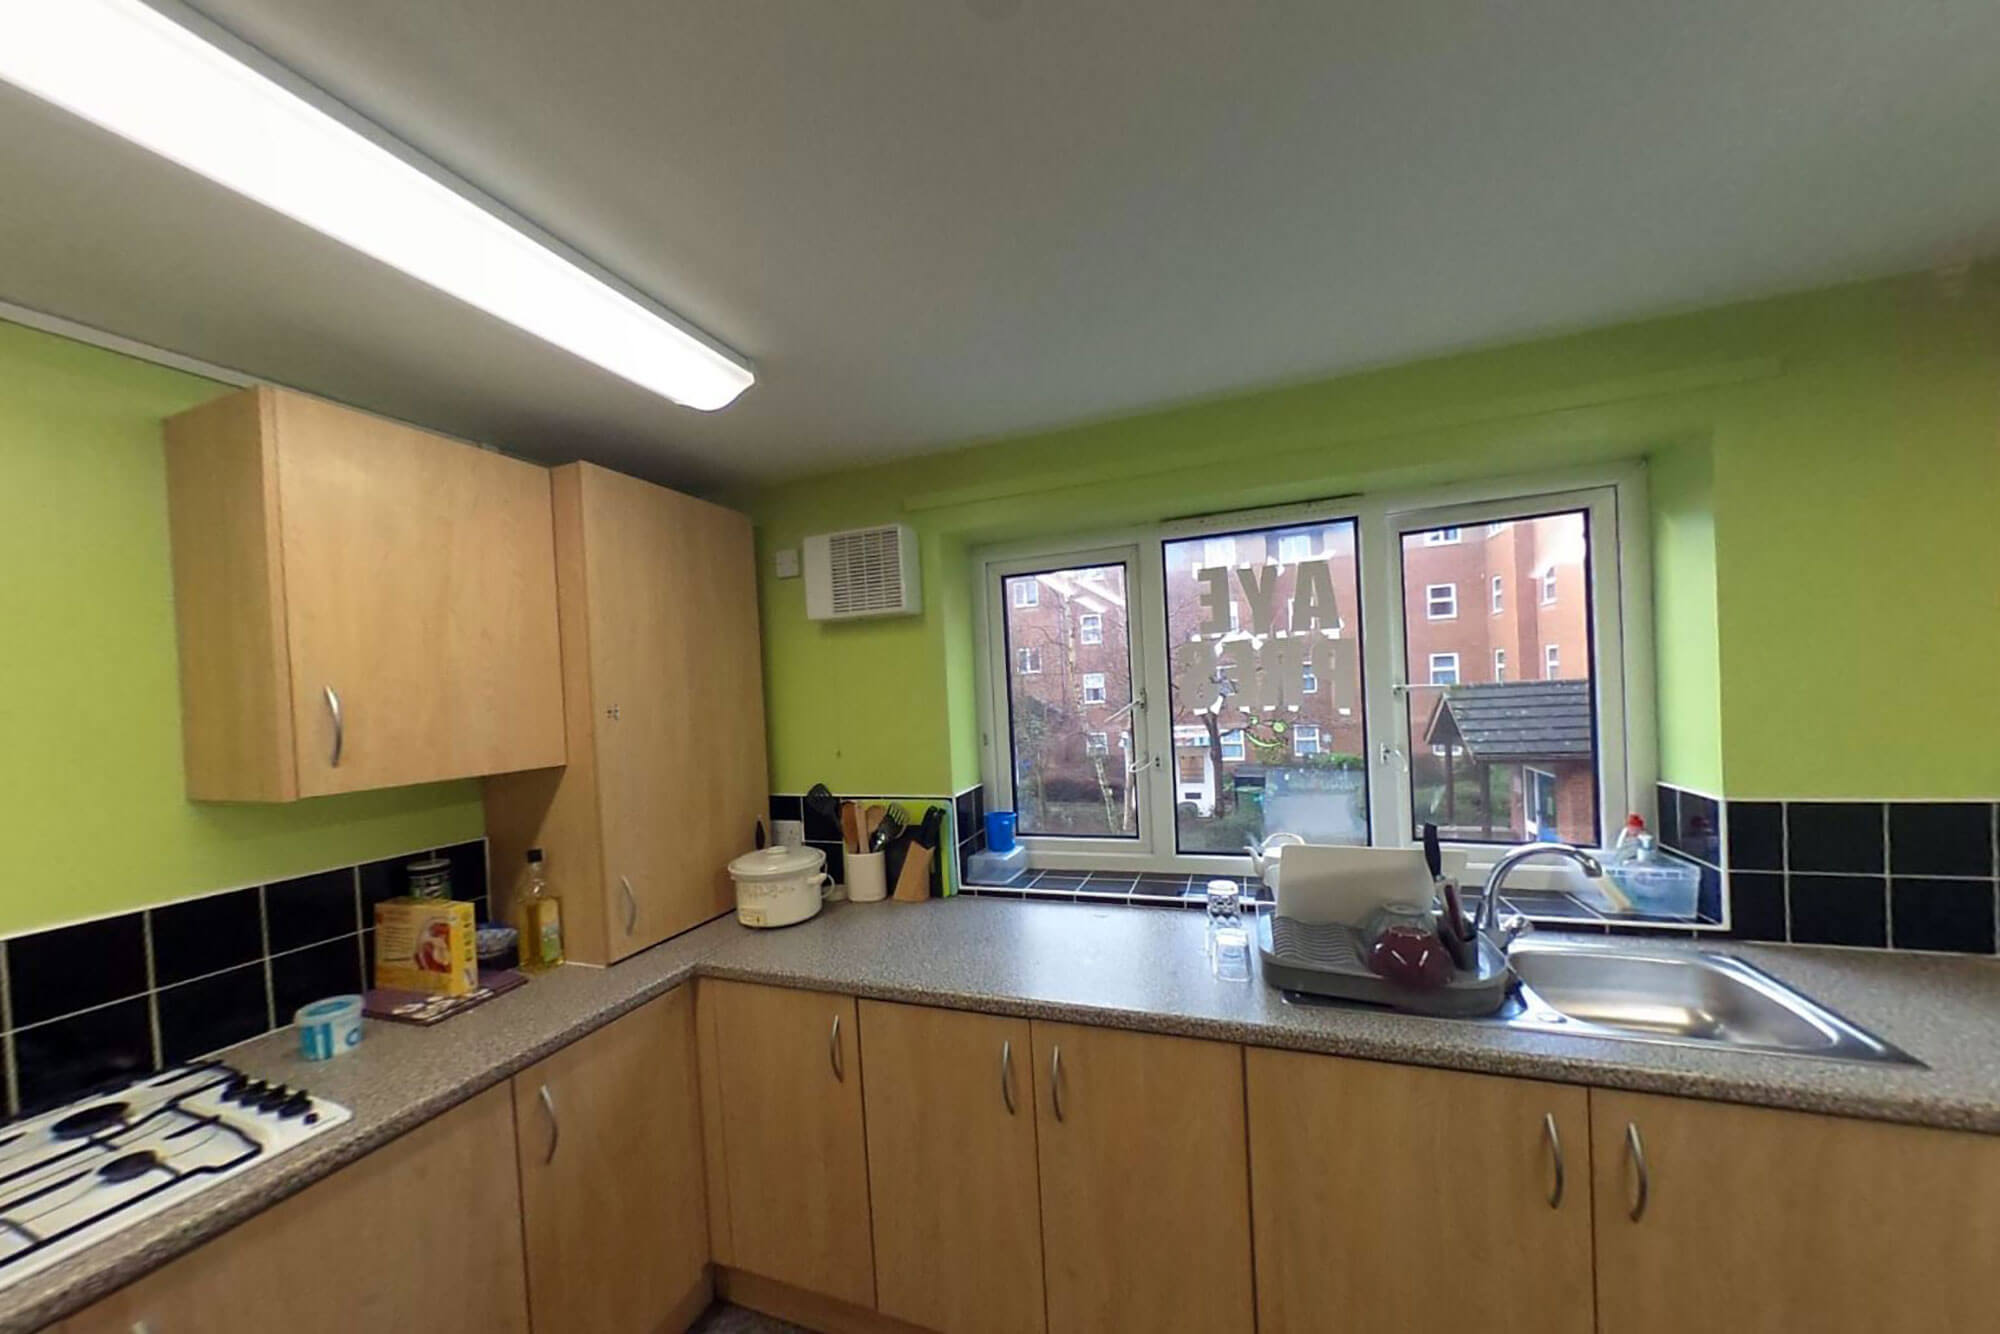 Princess Alice Court kitchen